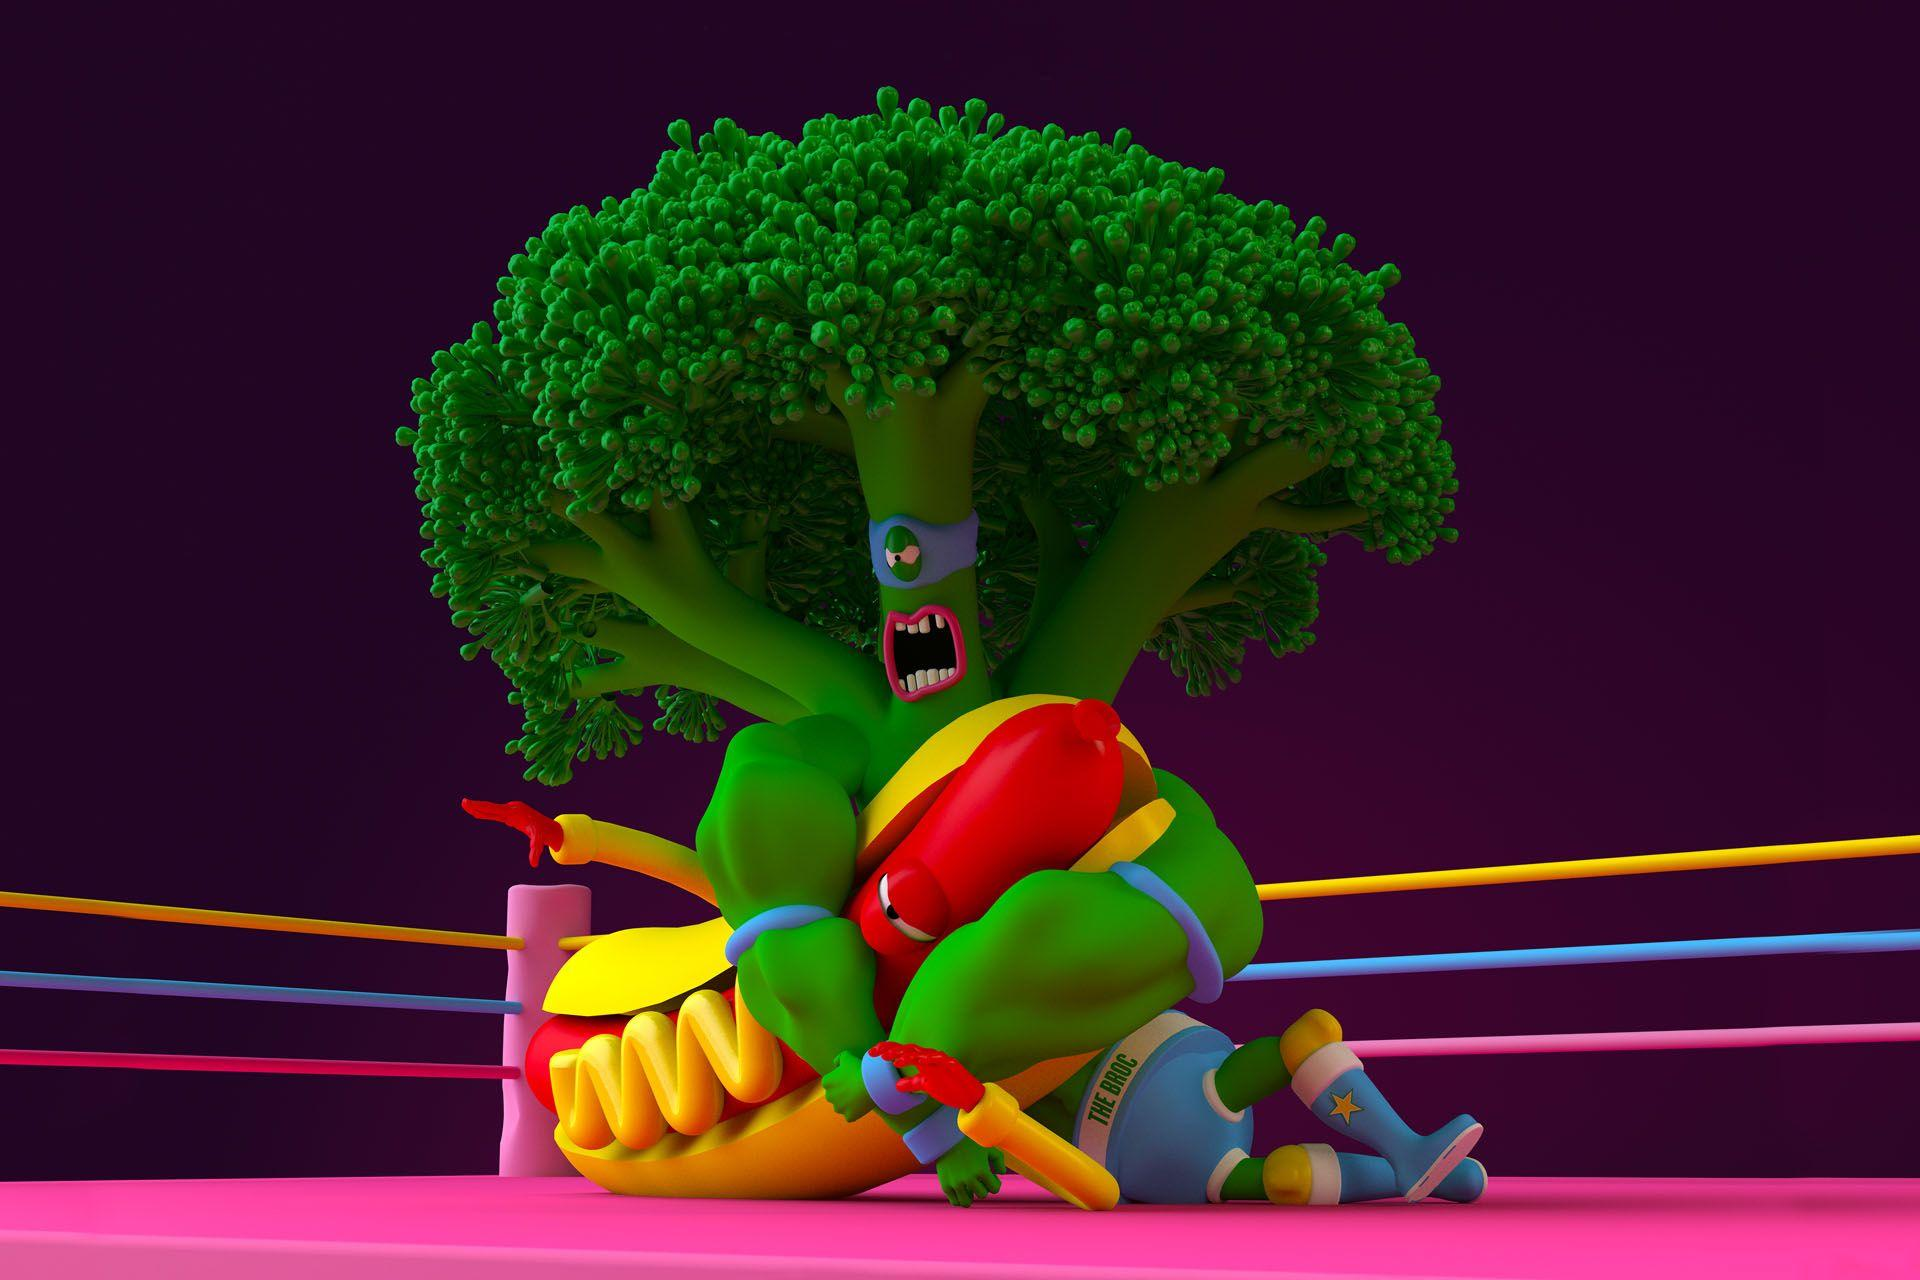 Broccoli man wrestling a hotdog